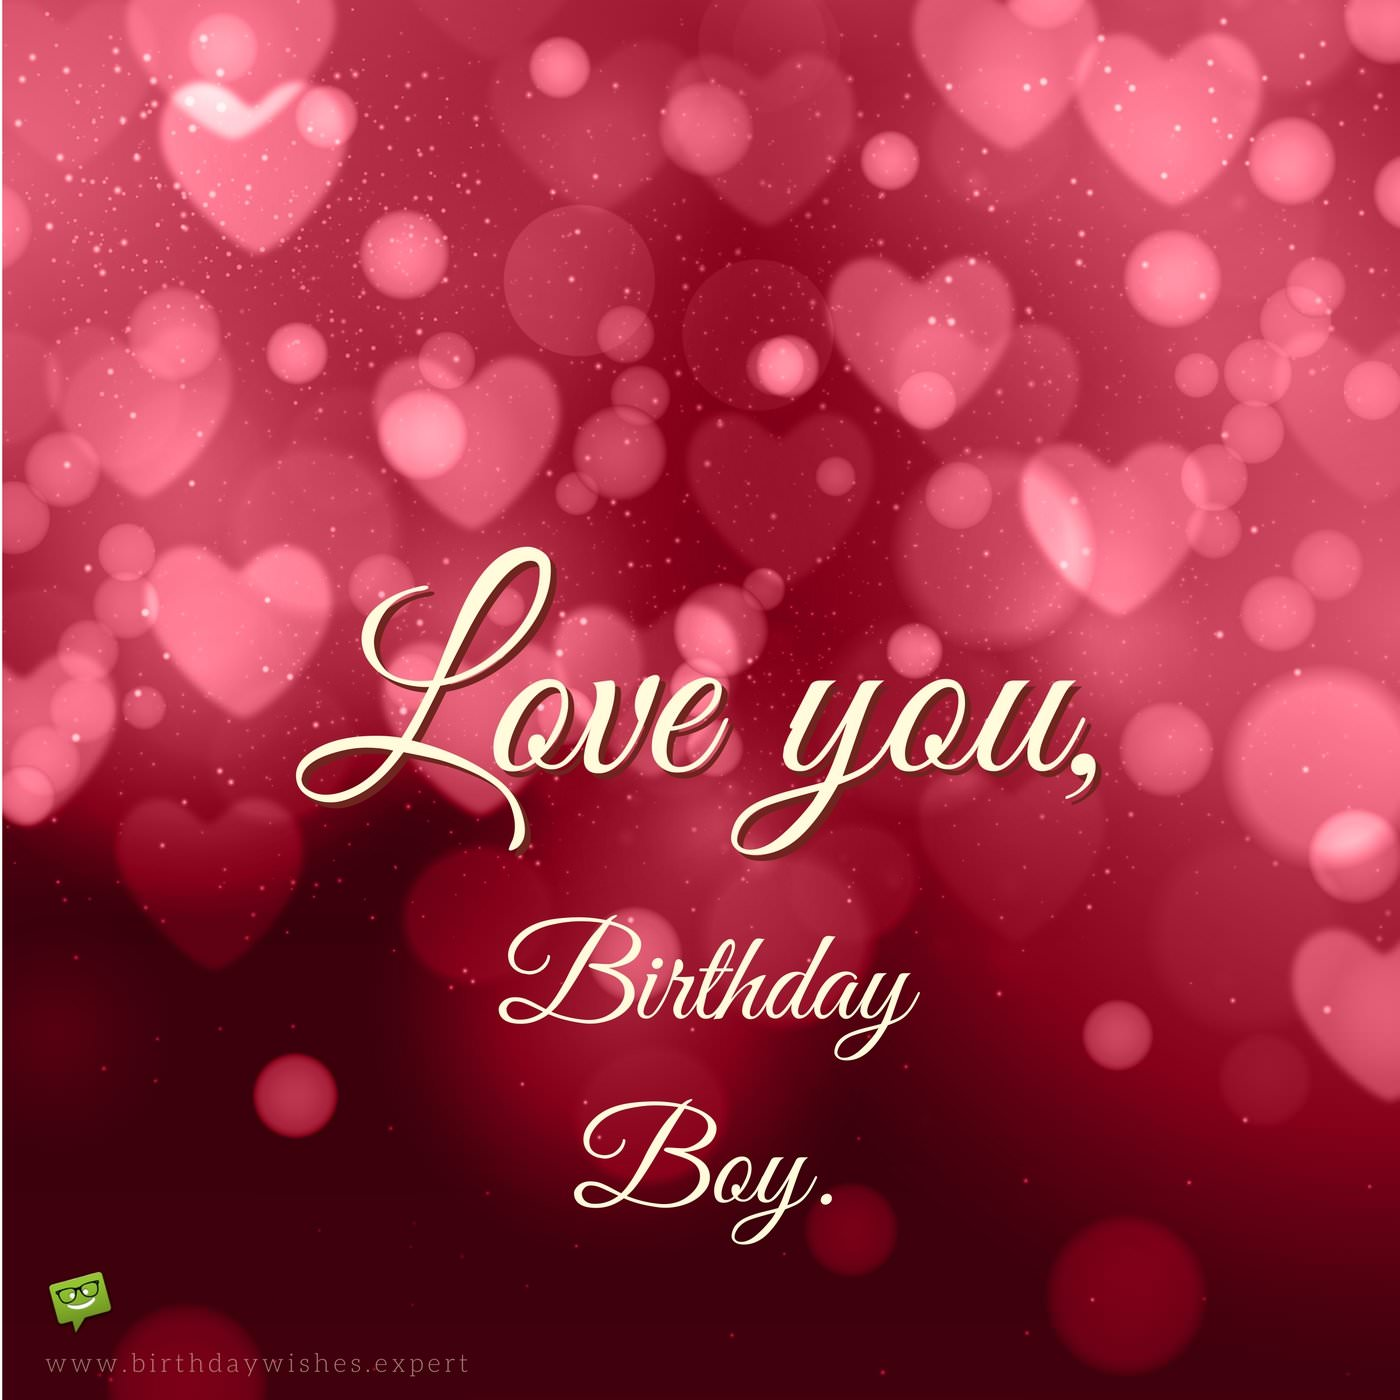 Smart Funny and Sweet Birthday Wishes for your Boyfriend – Twilight Birthday Card